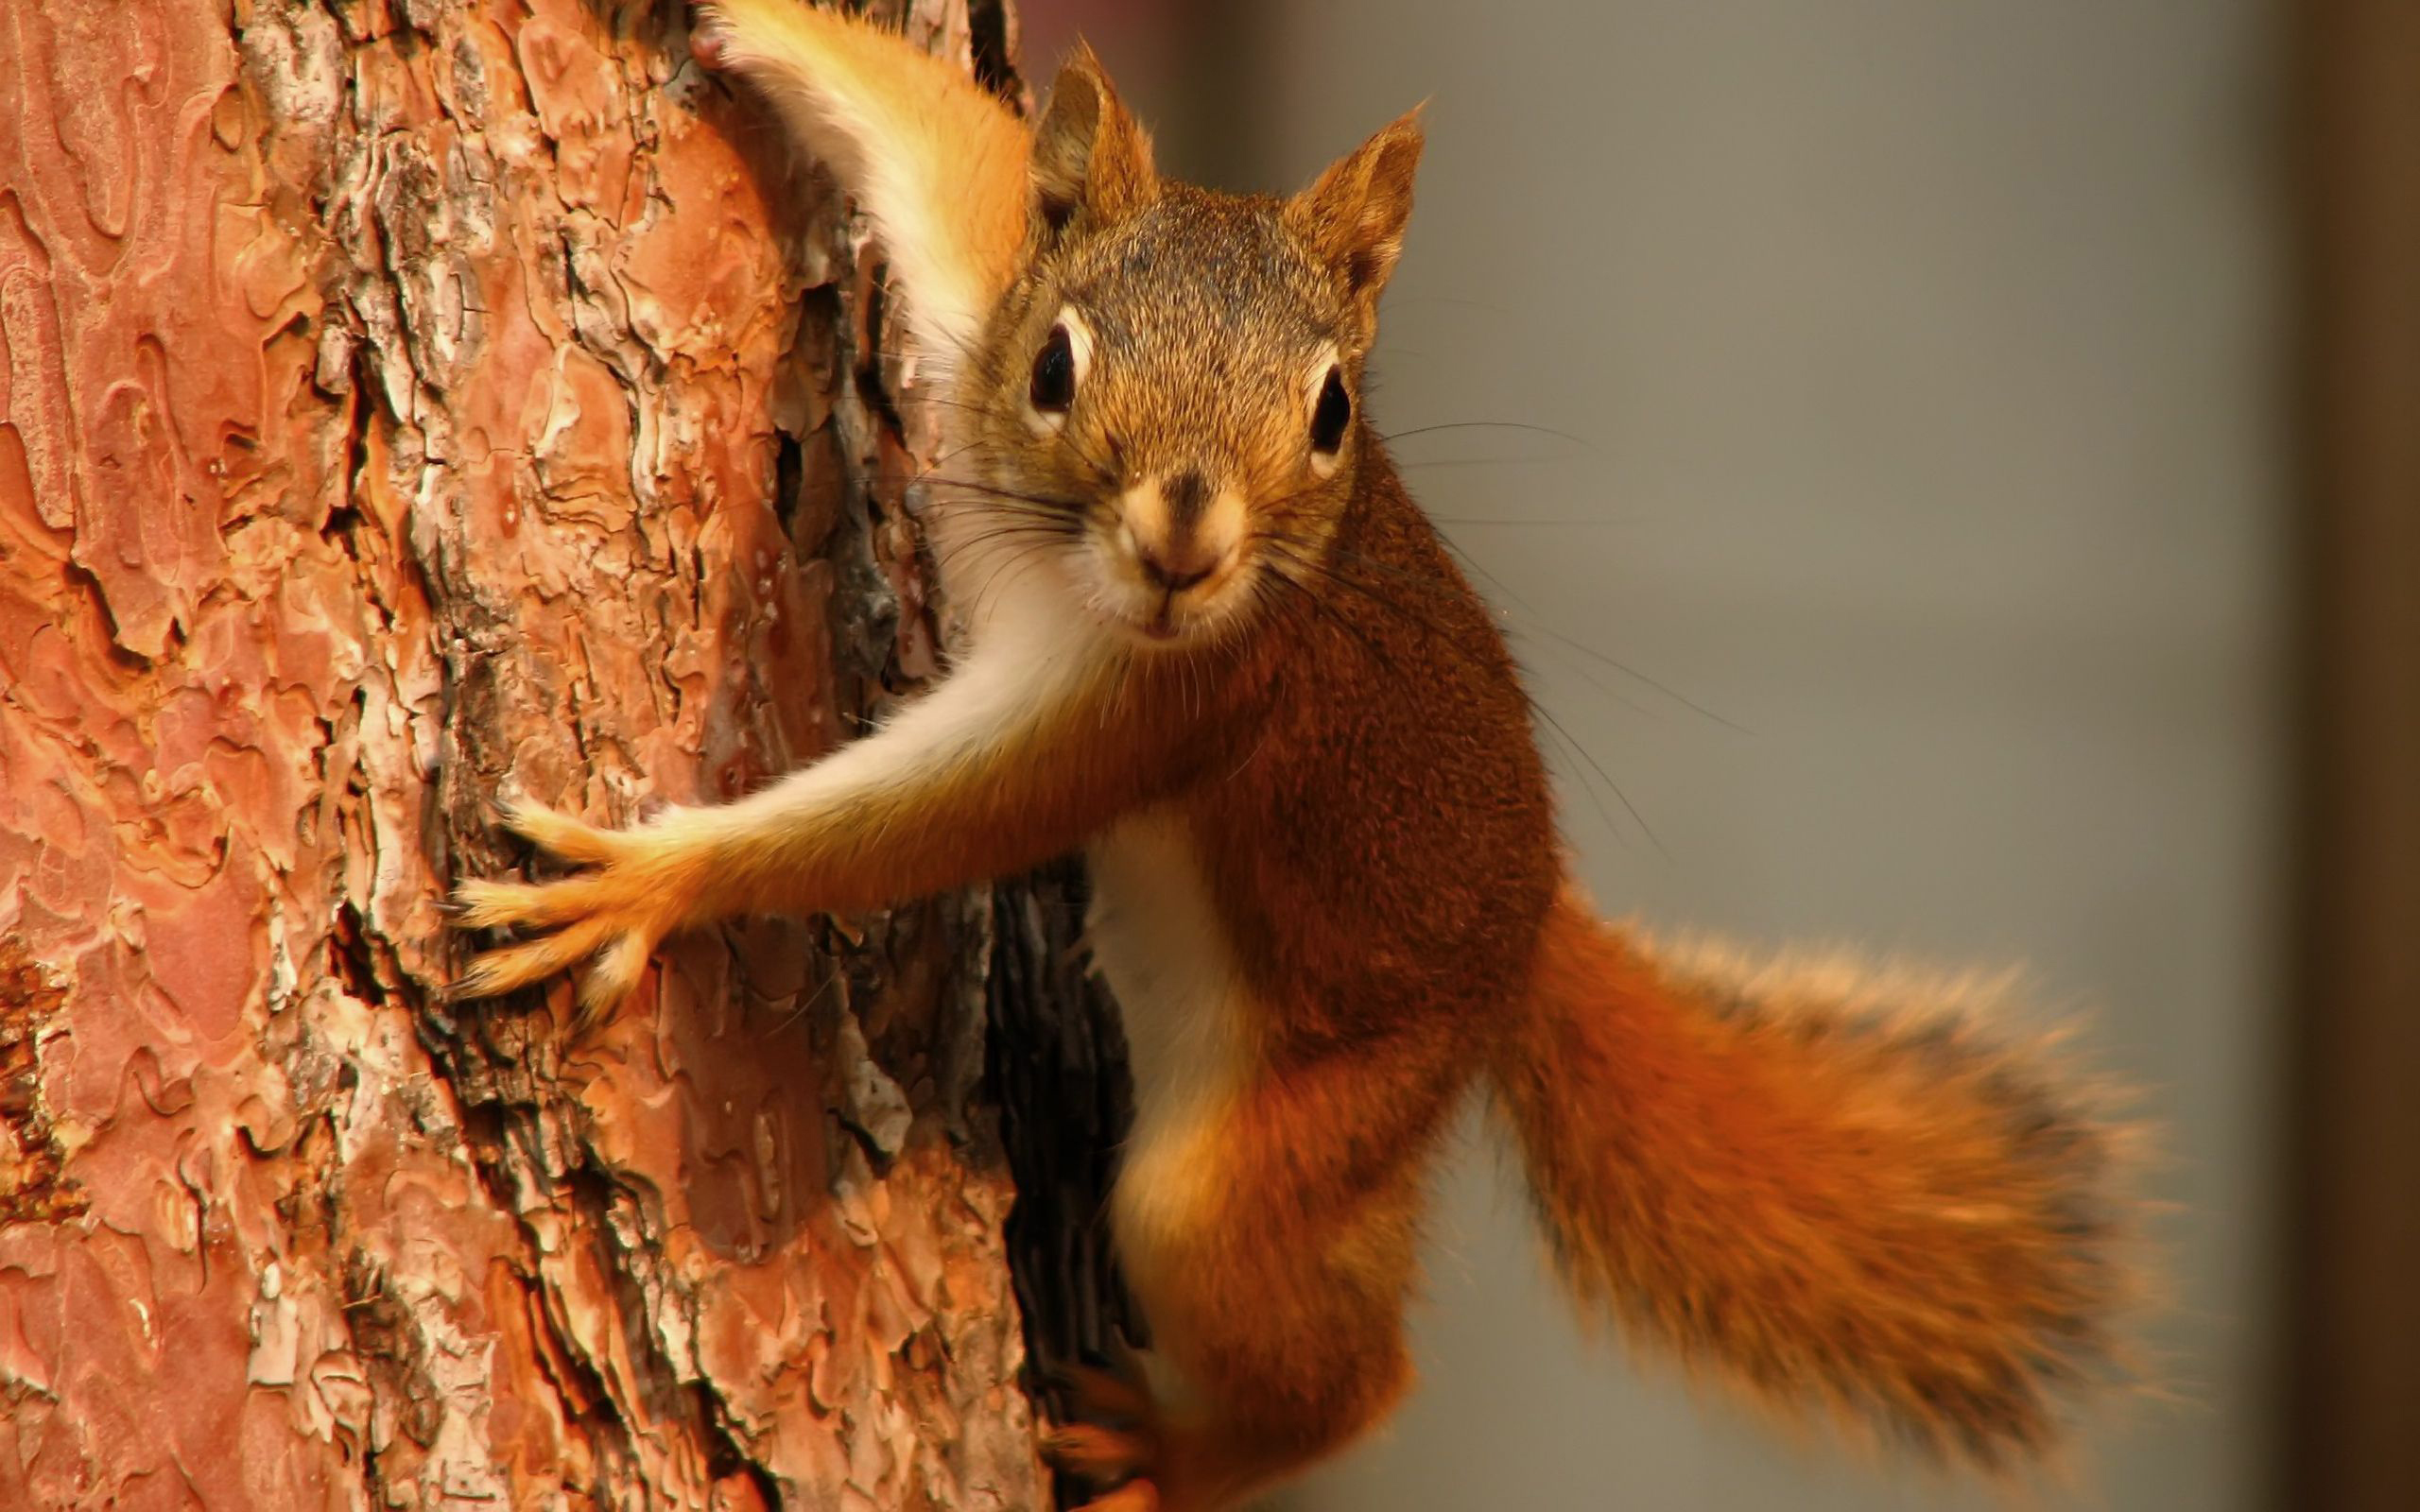 33925 download wallpaper Animals, Squirrel screensavers and pictures for free